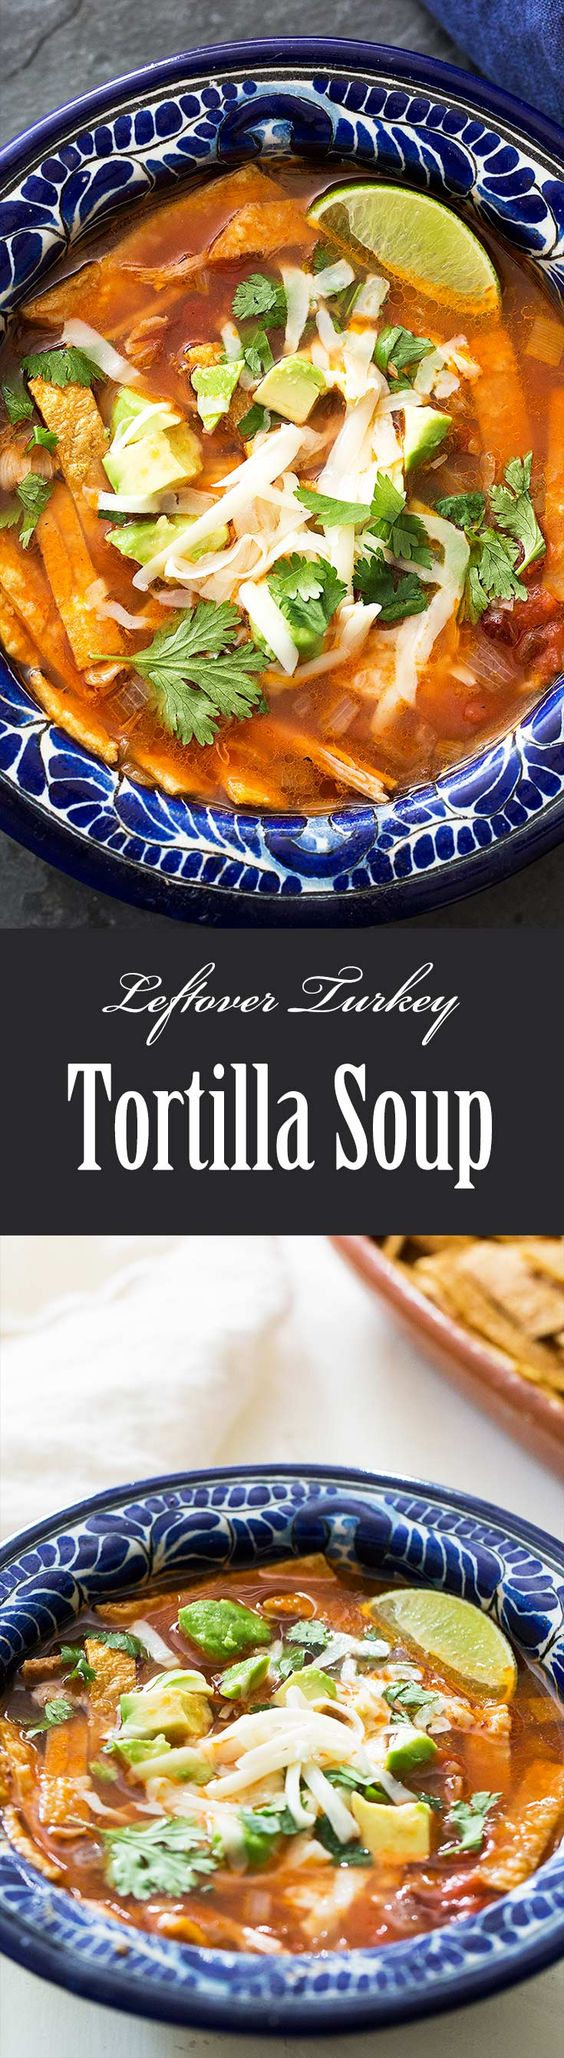 Turkey Tortilla Soup ~ GREAT tortilla soup made with leftover turkey ...